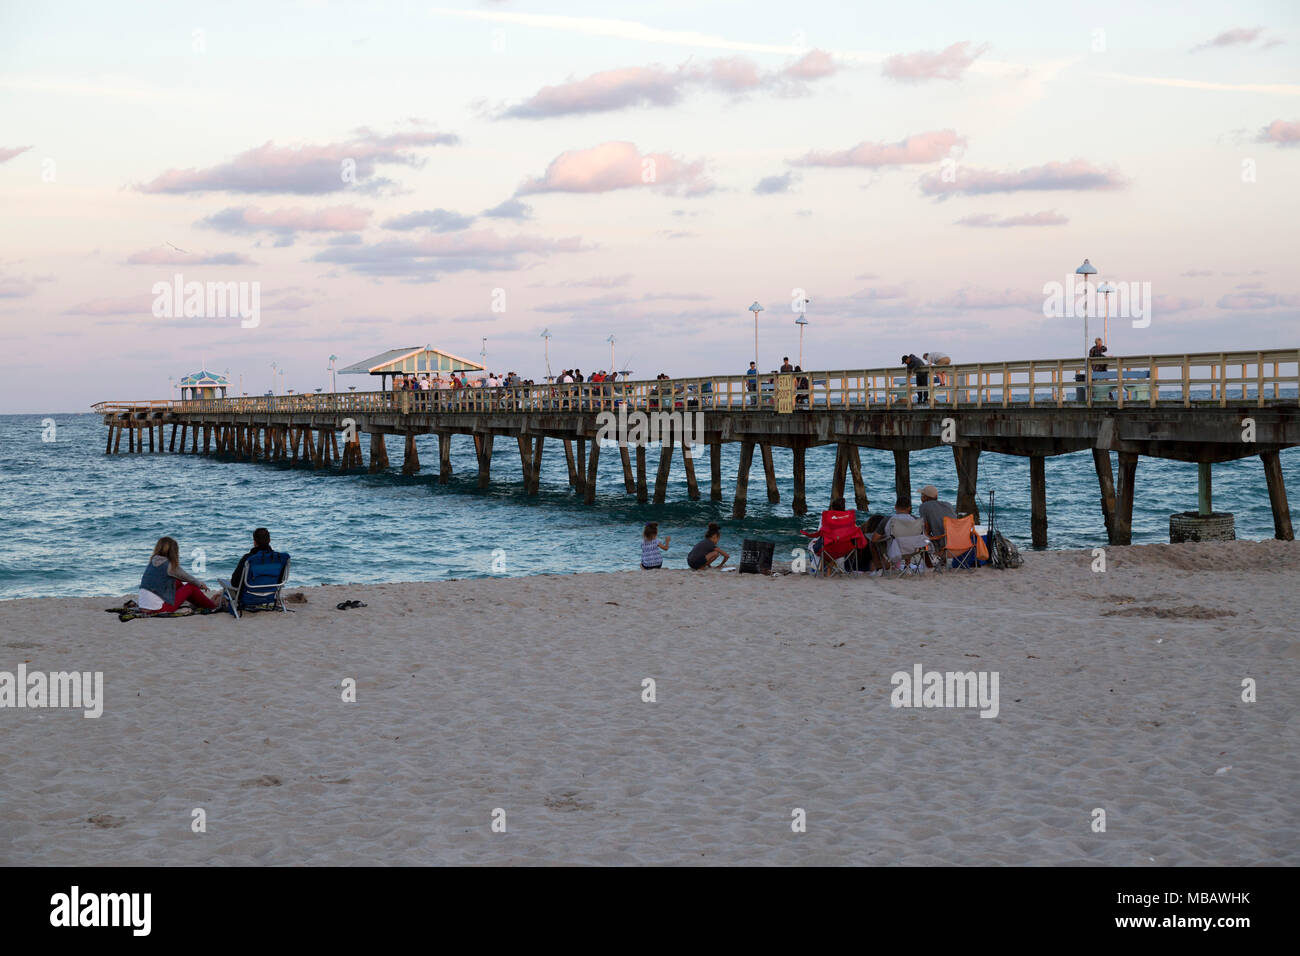 People gathered on pier at sunset in pompano beach, Florida - Stock Image